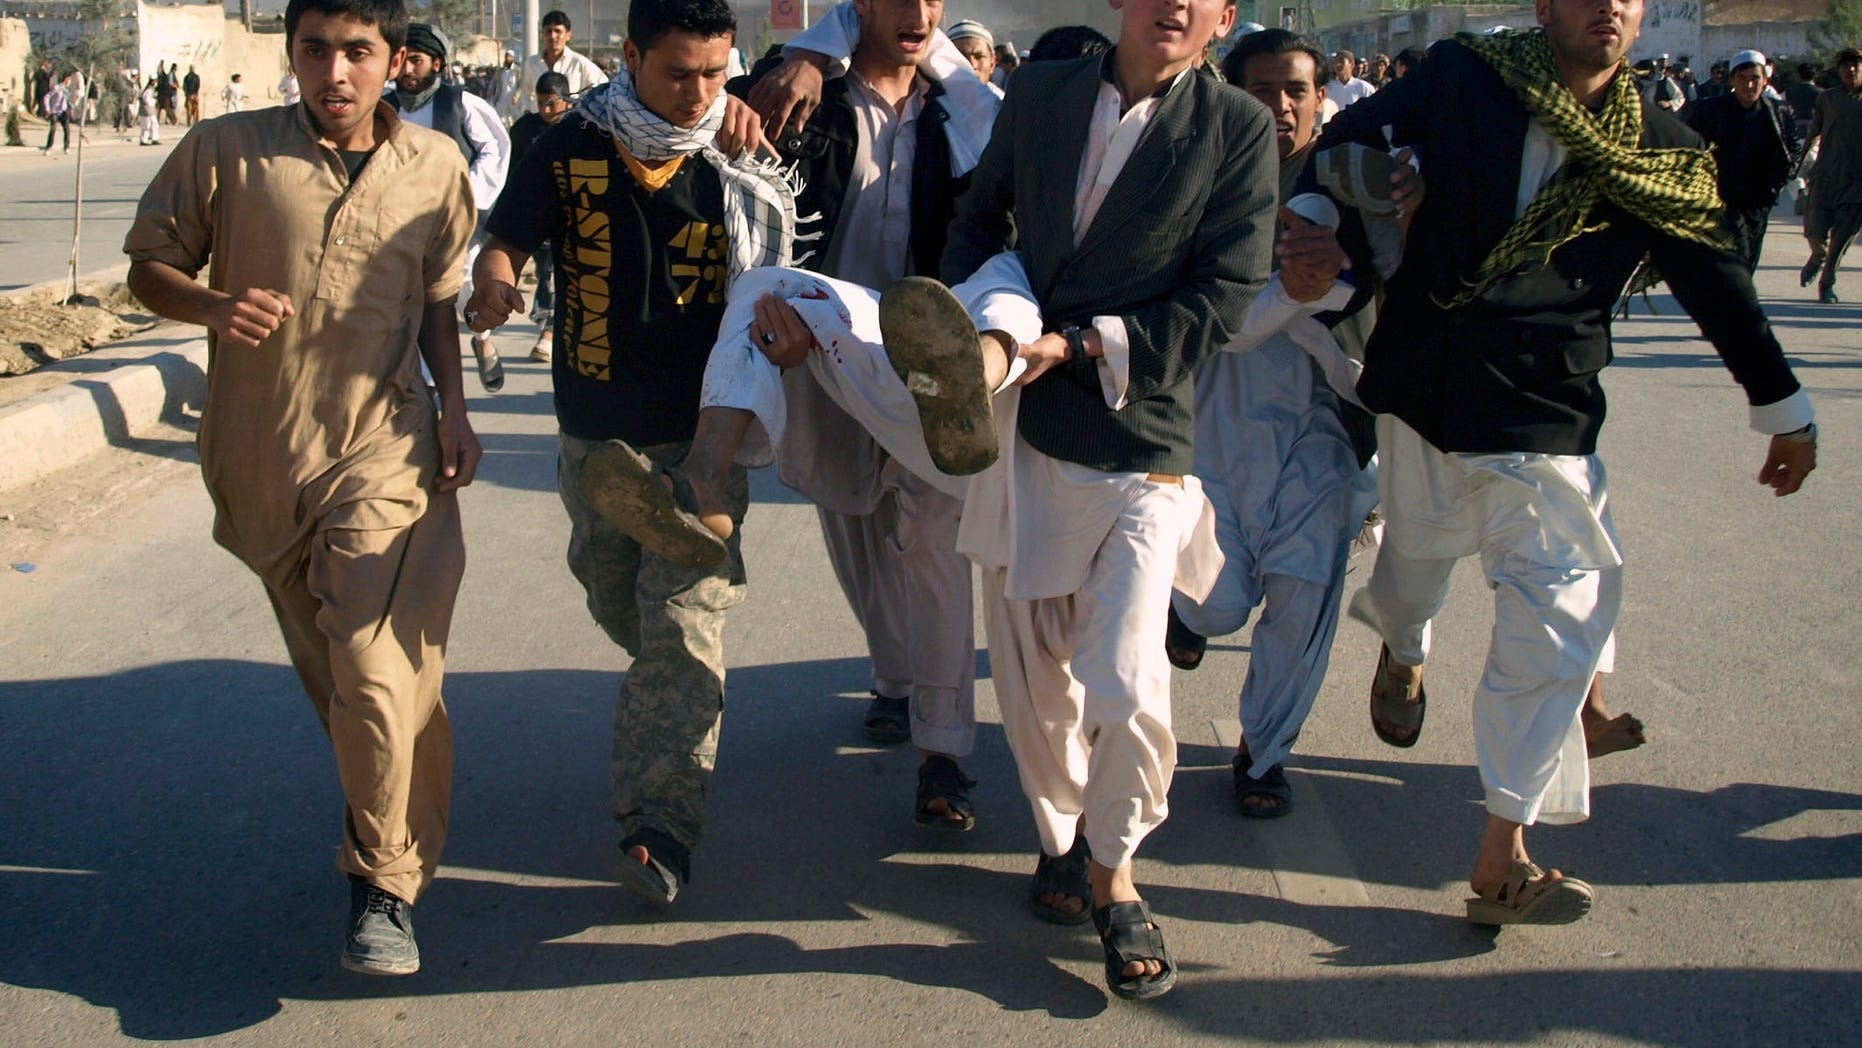 Afghans carrying a man, who got wounded following an attack on UN's office during a demonstration to condemn the burning of a copy of the Muslim holy book by a Florida pastor, in Mazar-i- Sharif north of Kabul, Afghanistan on Friday, April. 1, 2011. An Afghan official says seven people have been killed at a U.N. office in the northern city of Mazar-i-Sharif when a Koran burning protest turned violent.